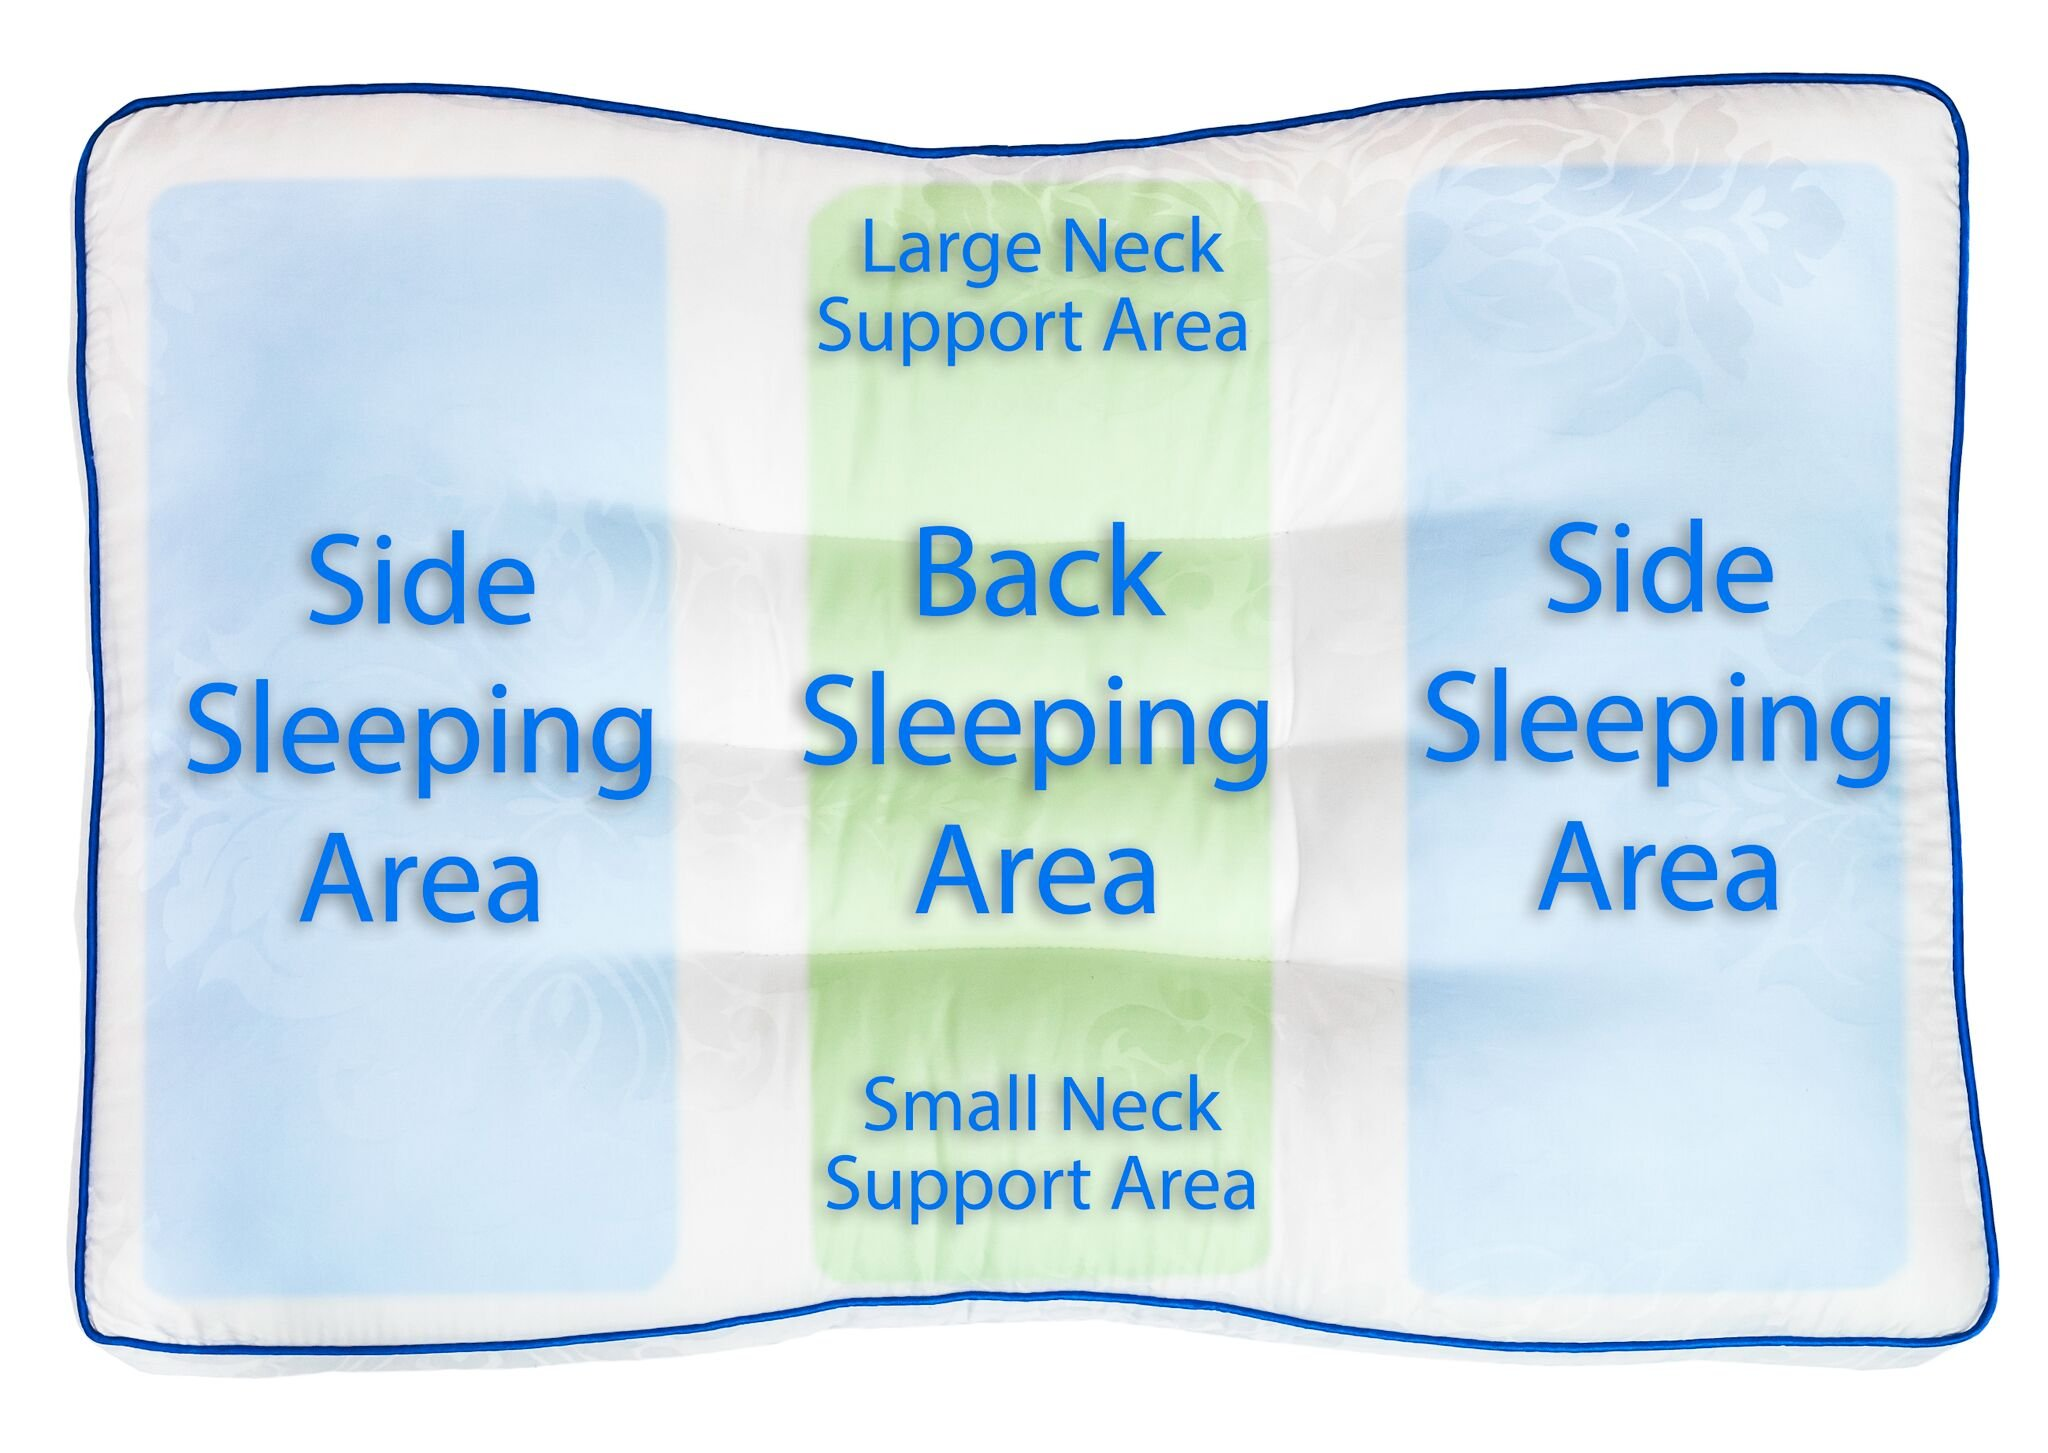 Nature's Guest Cervical Support Pillow - Fully adjustable, doctor recommended contour design - Helps reduce neck and back pain, improve cervical health - Hypoallergenic, For back and side sleepers by Nature's Guest (Image #2)